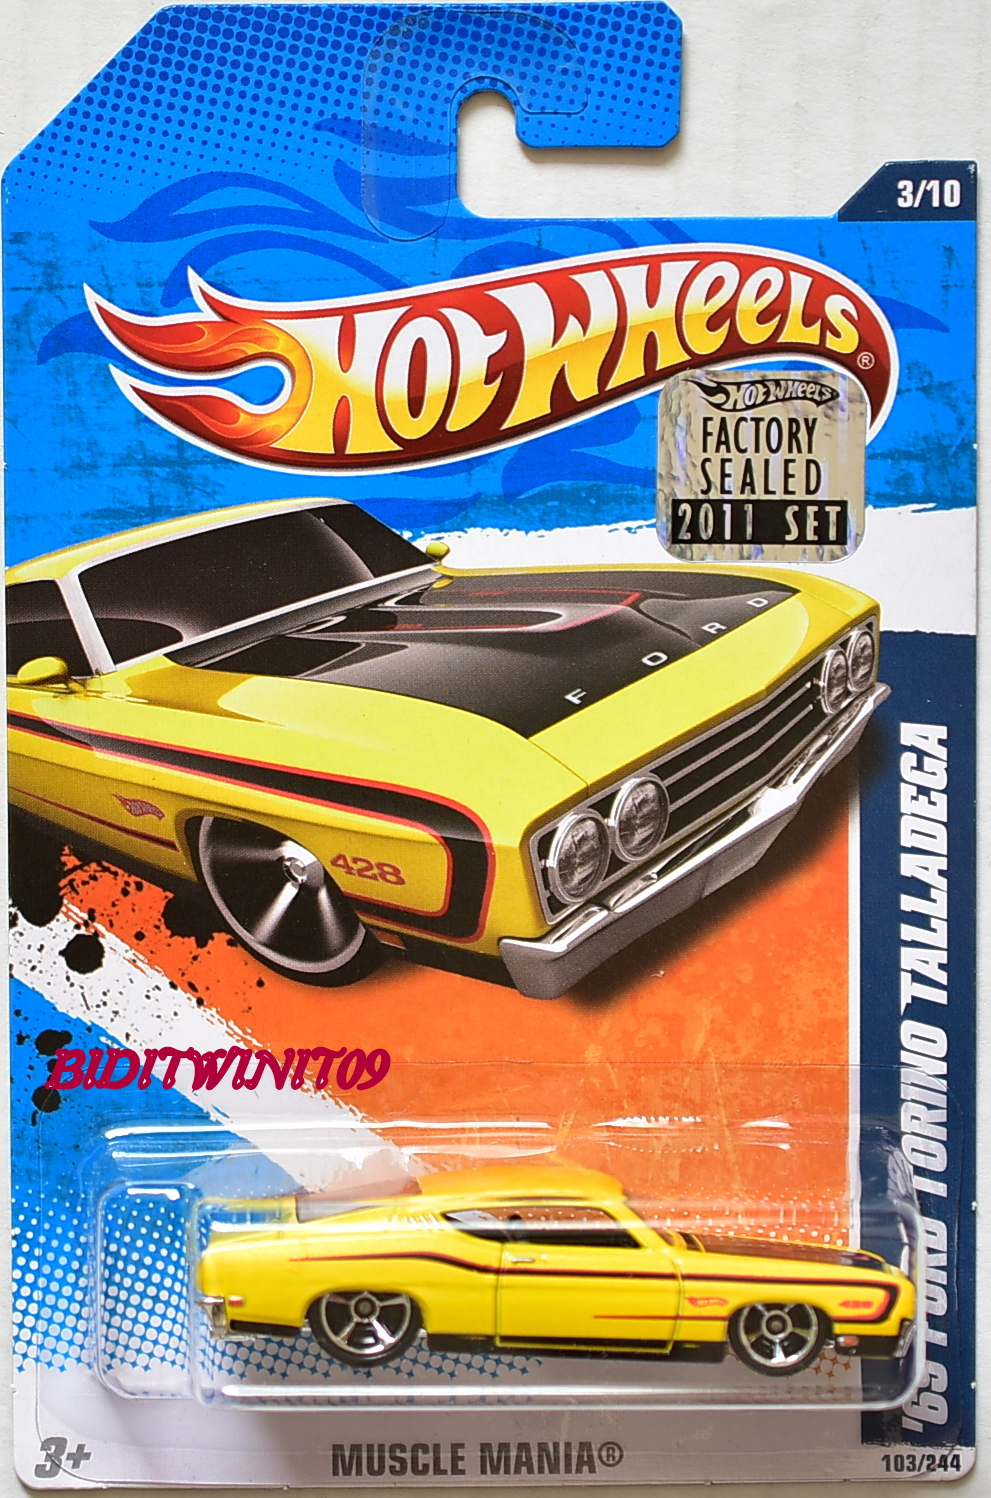 HOT WHEELS 2011 MUSCLE MANIA '69 FORD TORINO TALLADEGA YELLOW FACTORY SEALED